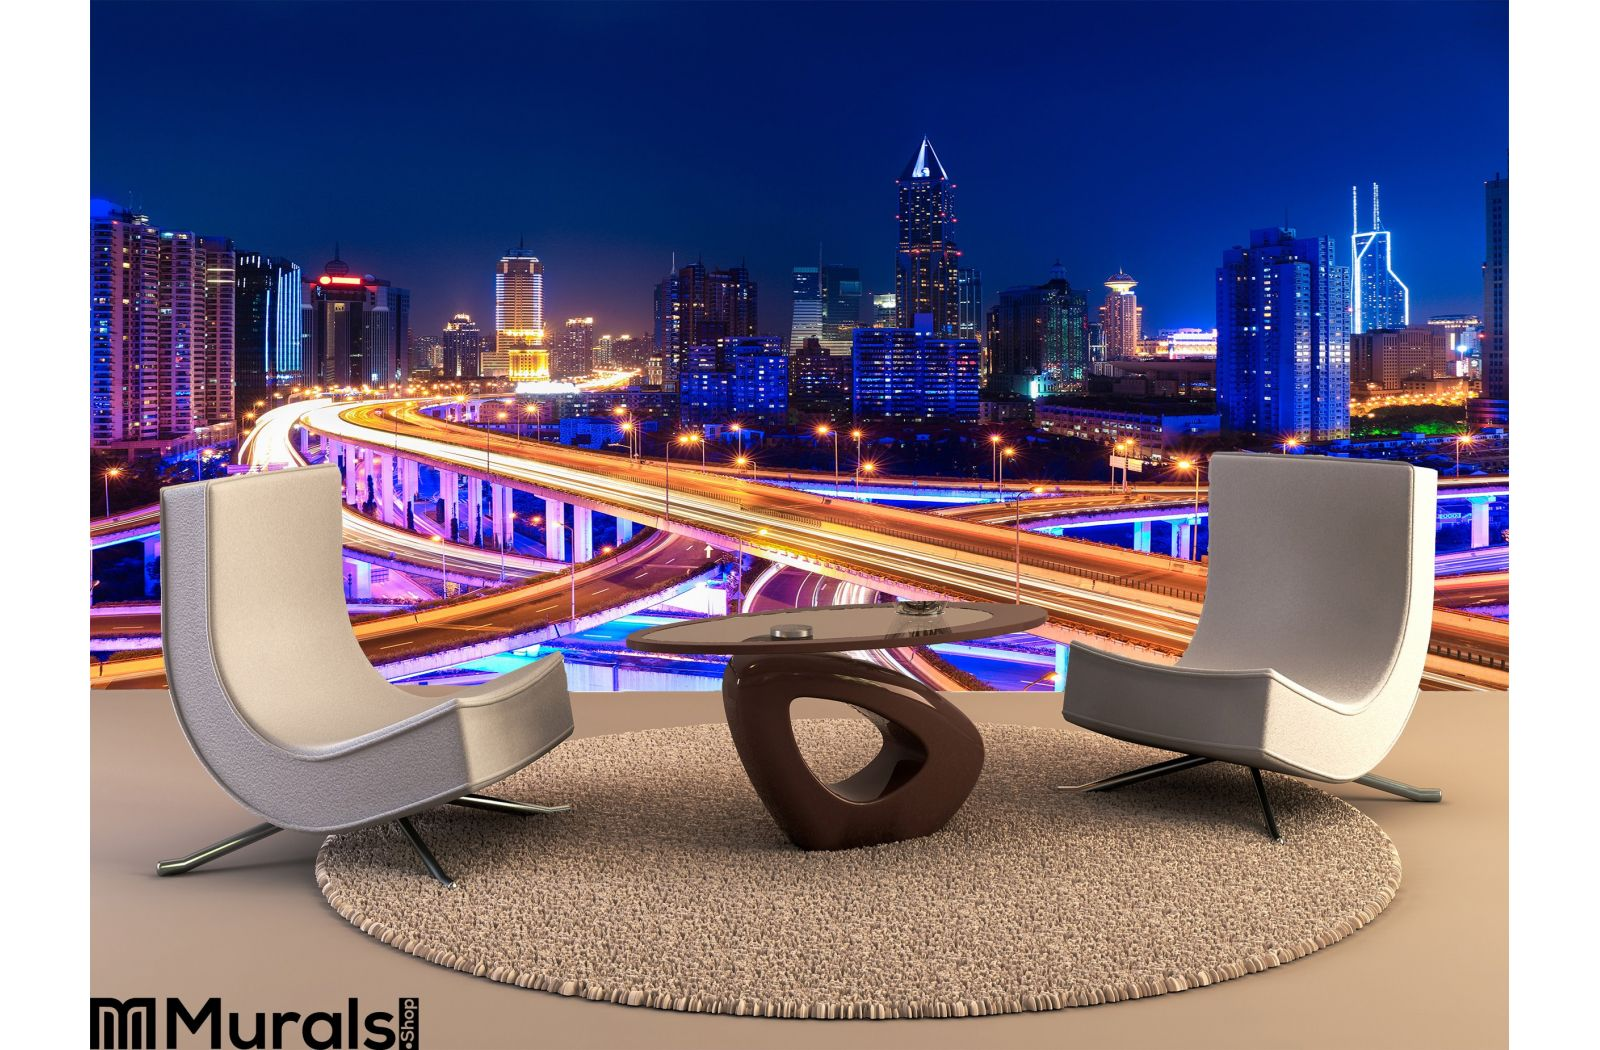 Modern City Skyline Interchange Overp Night Wall Mural Tapestry Tapestries